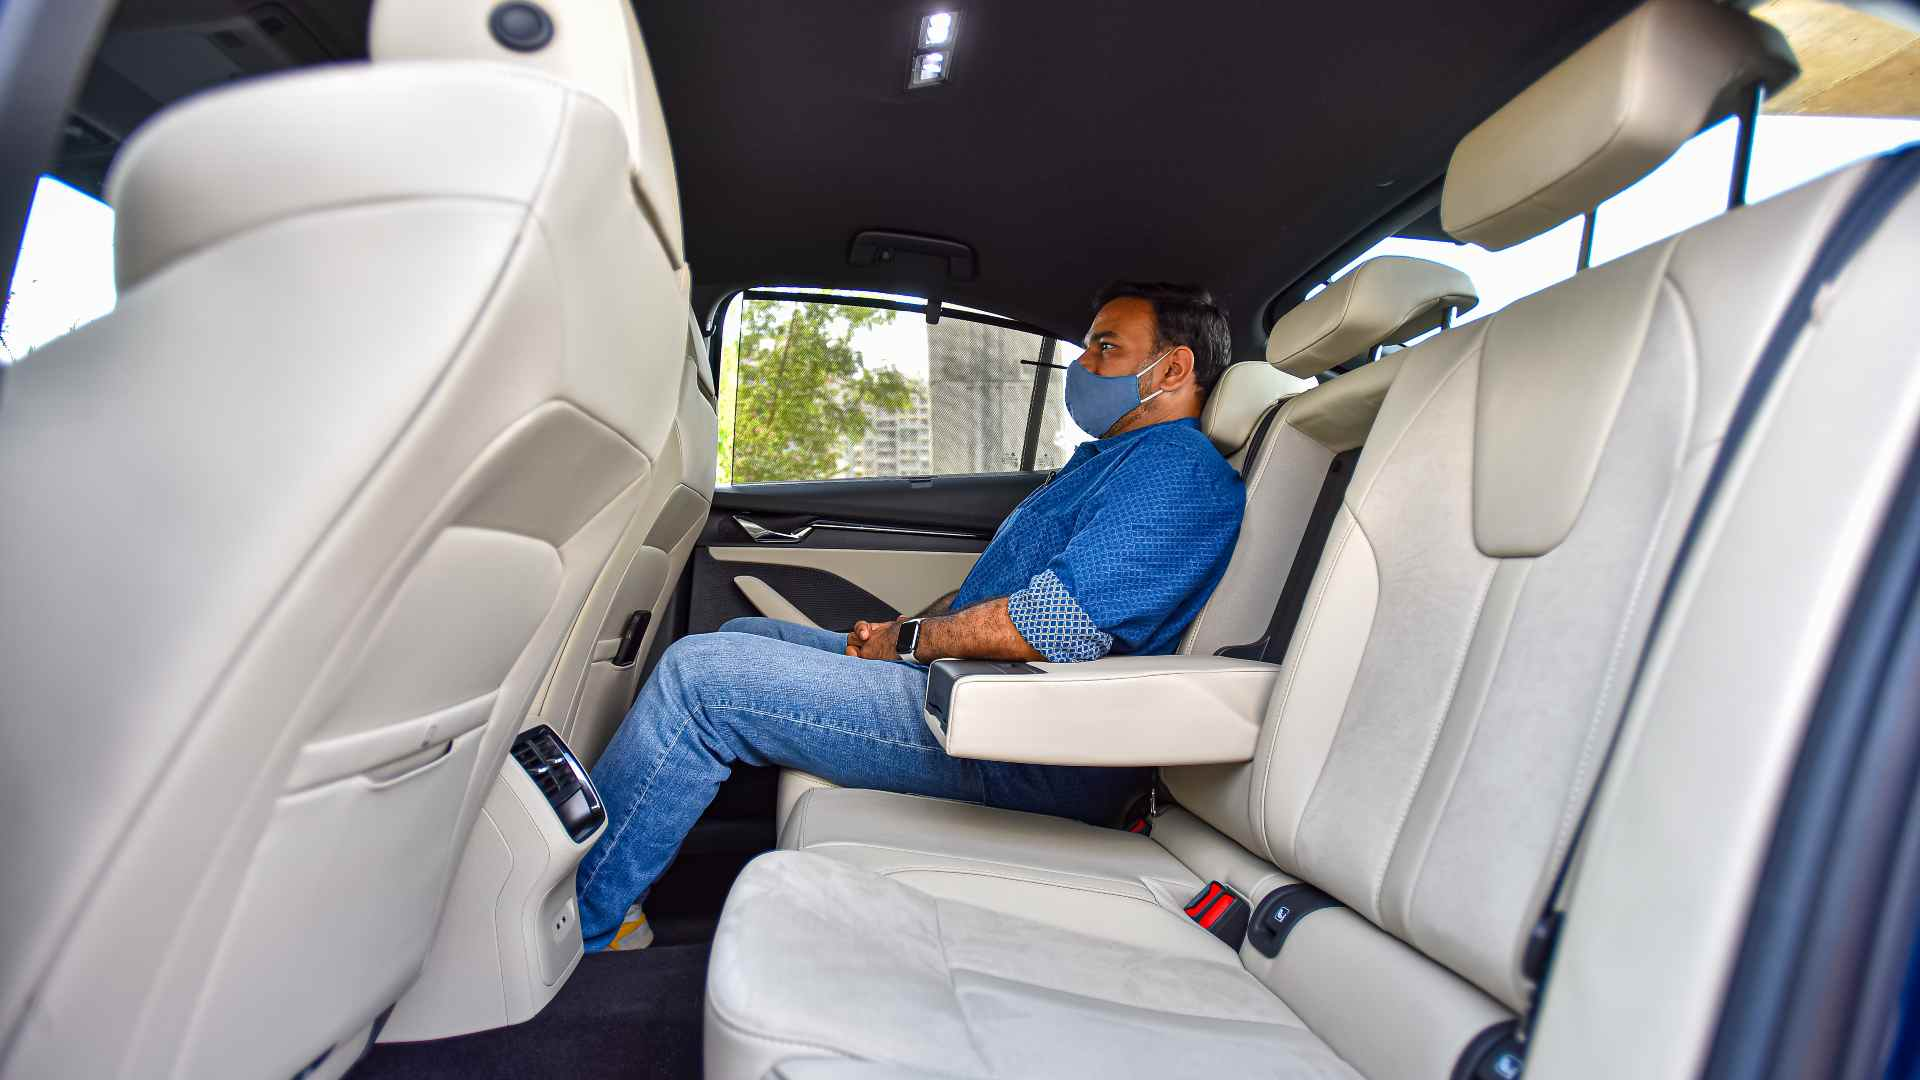 The new Octavia's rear seat has plenty of room; headroom could be a little tight for tall passengers. Image: Overdrive/Anis Shaikh